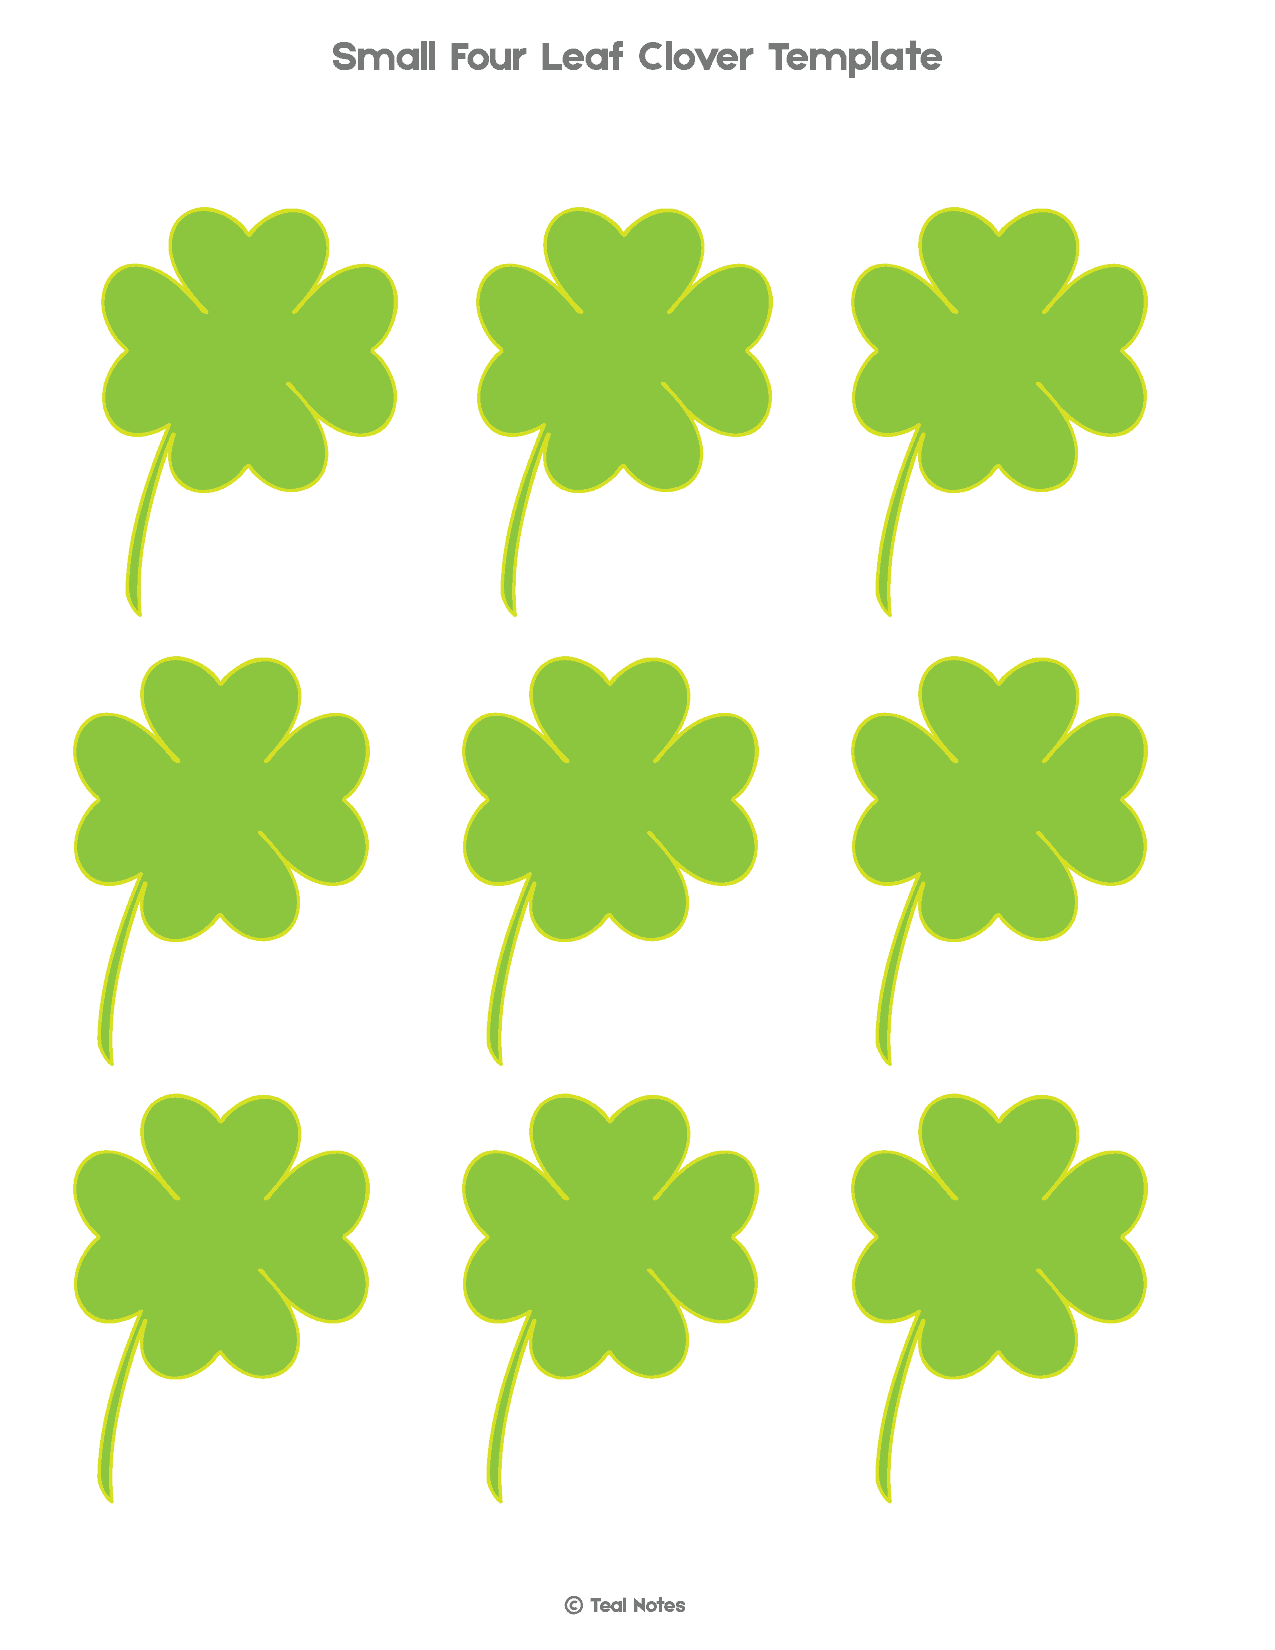 image relating to Four Leaf Clover Printable Template titled 4 Leaf Clover Template: Absolutely free Shamrock Template Printable